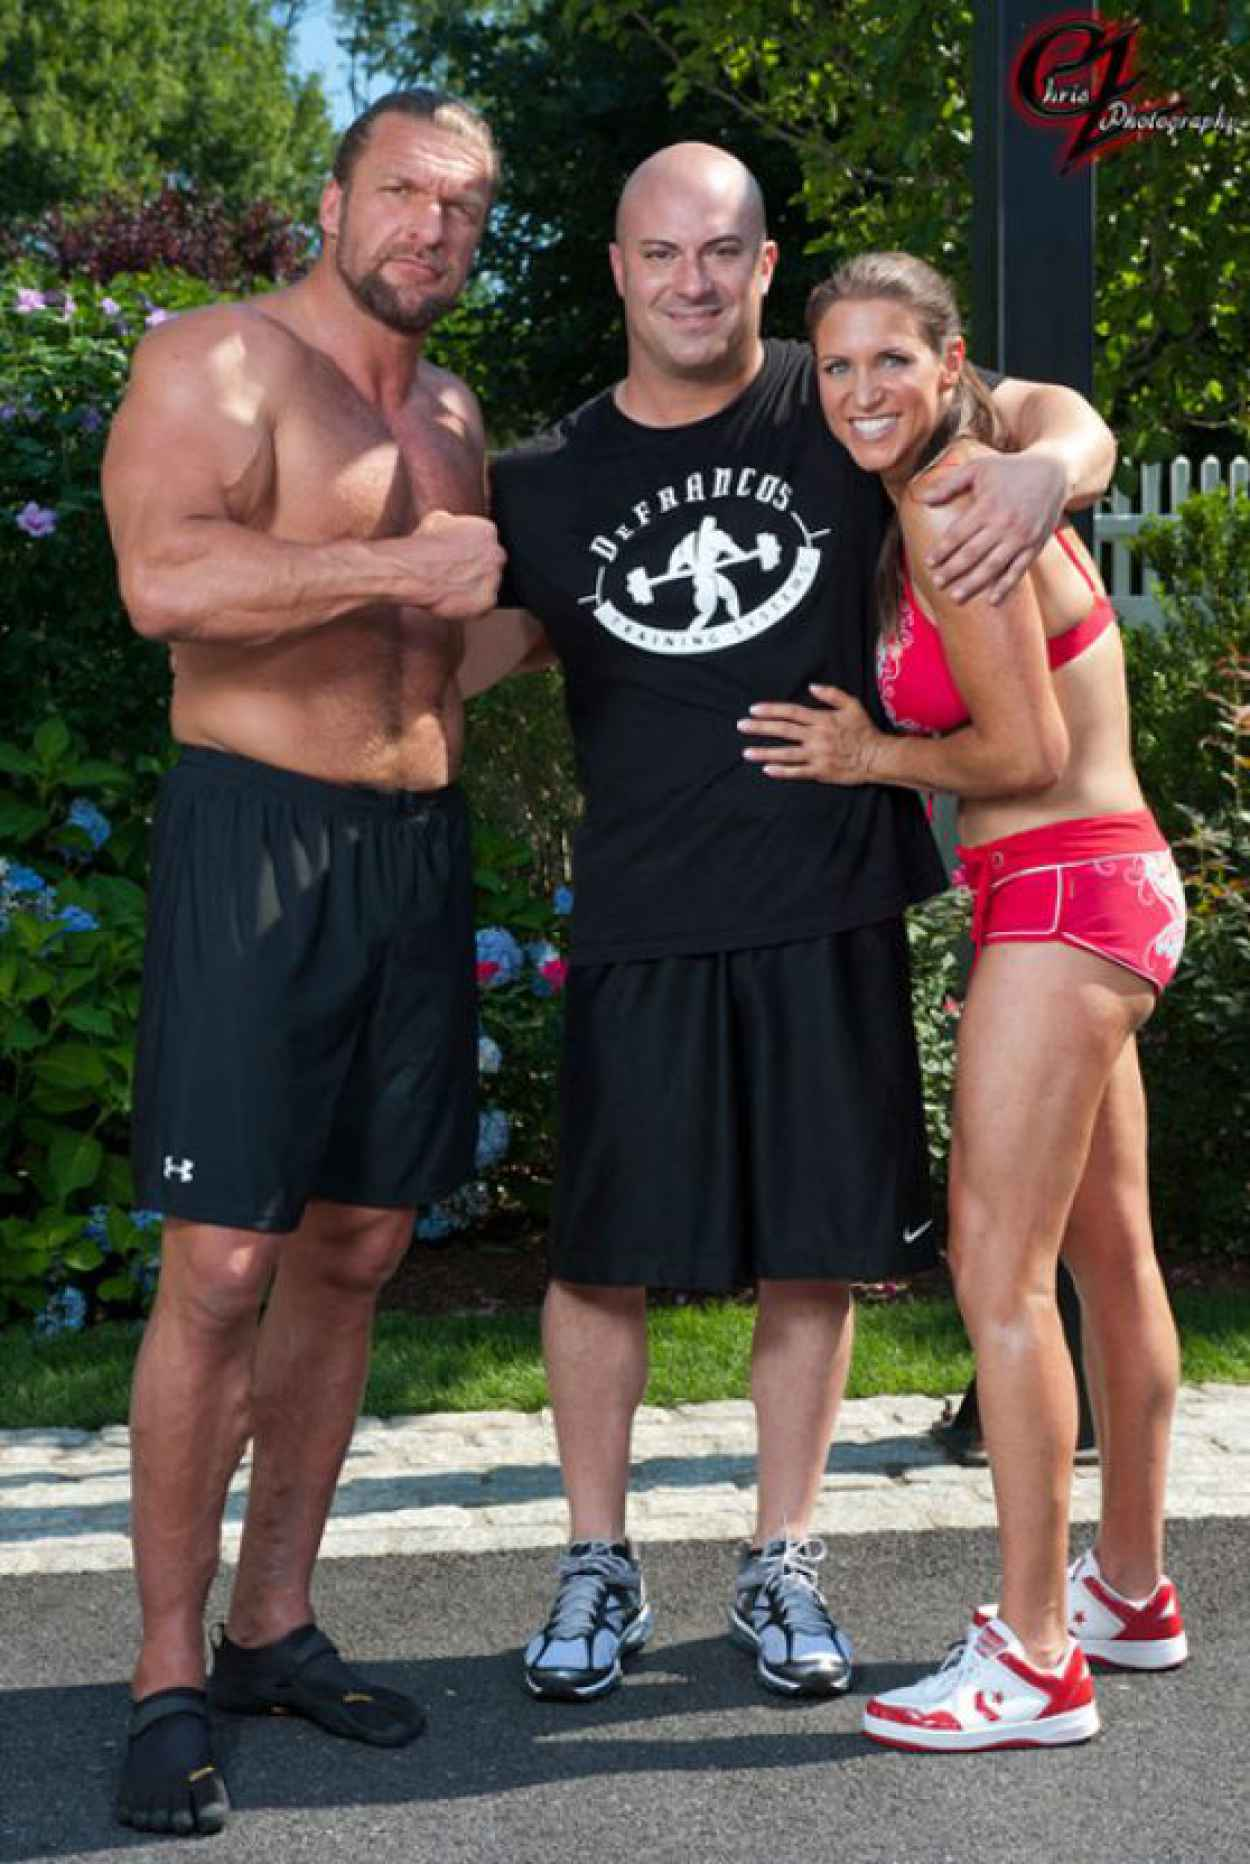 Stephanie McMahon in Bikini Working Out - Chris Zimmerman Photoshoot (2012)-4